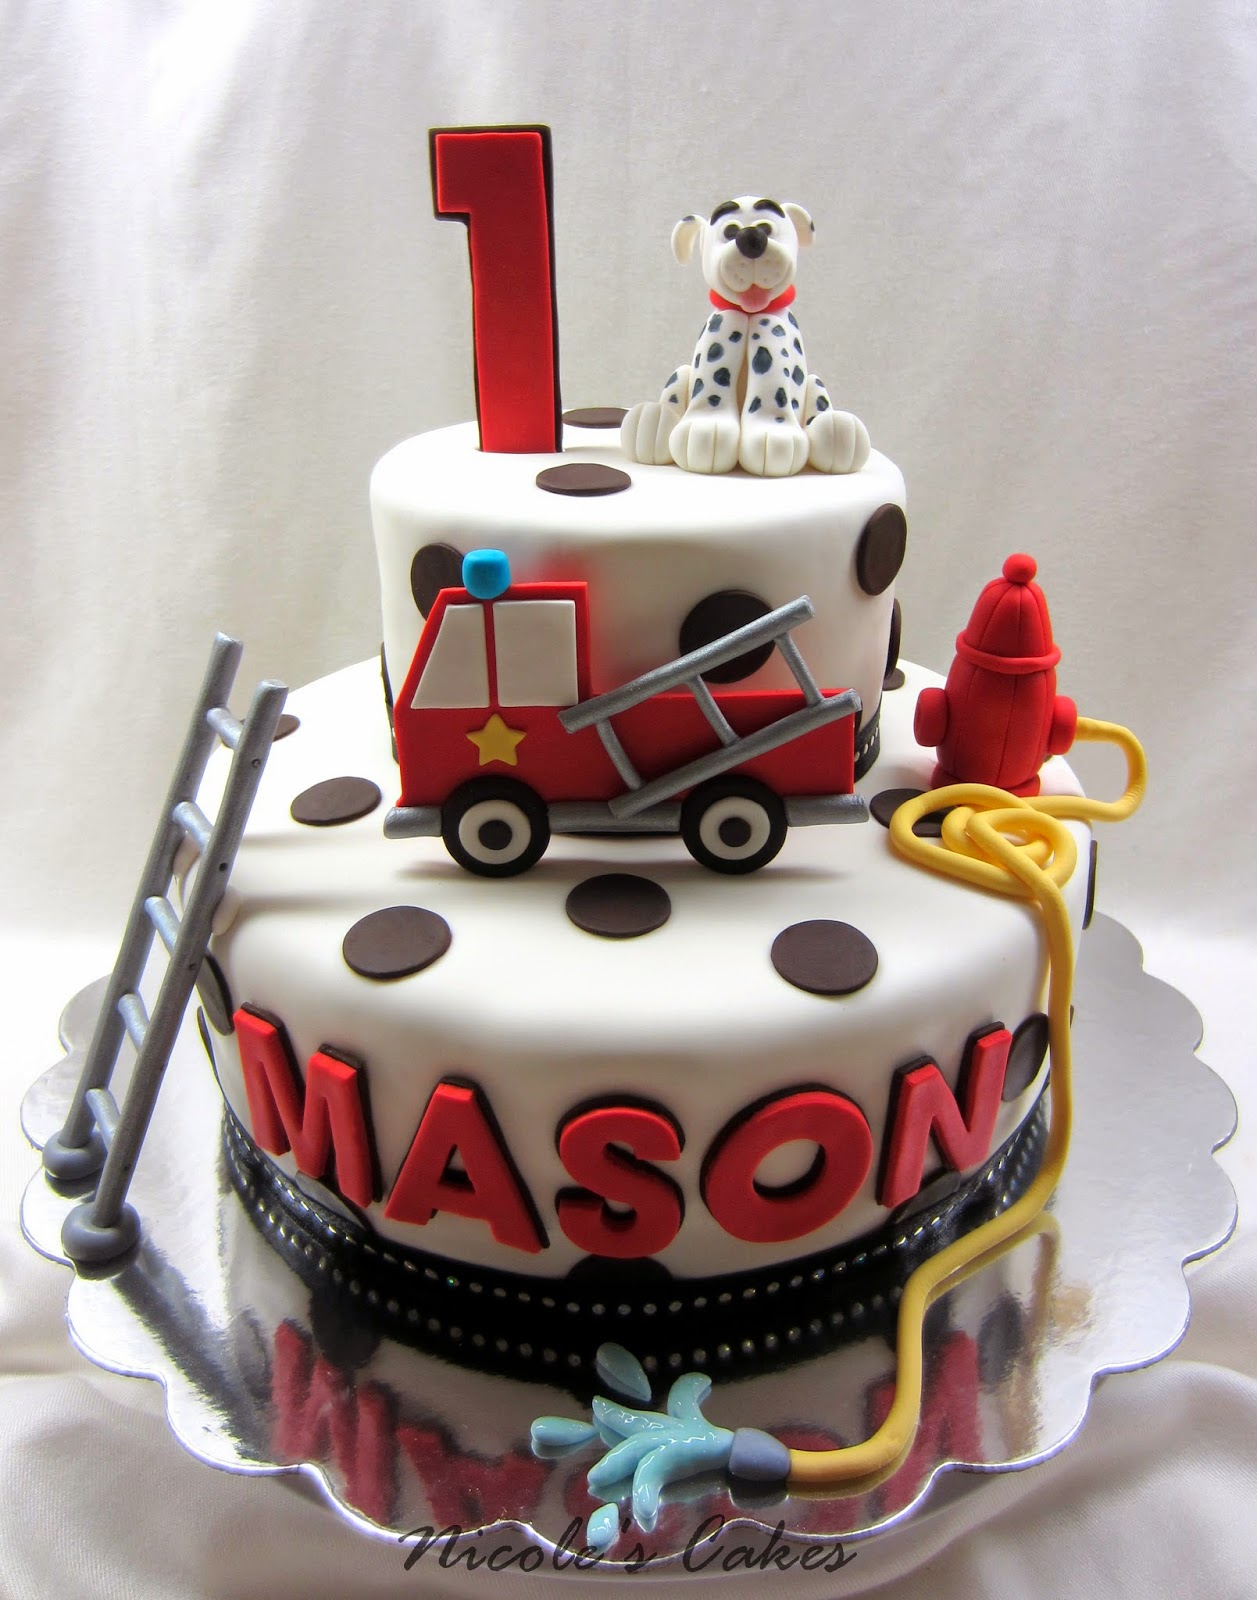 Sensational Confections Cakes Creations Fire Truck Dalmation 1St Funny Birthday Cards Online Alyptdamsfinfo